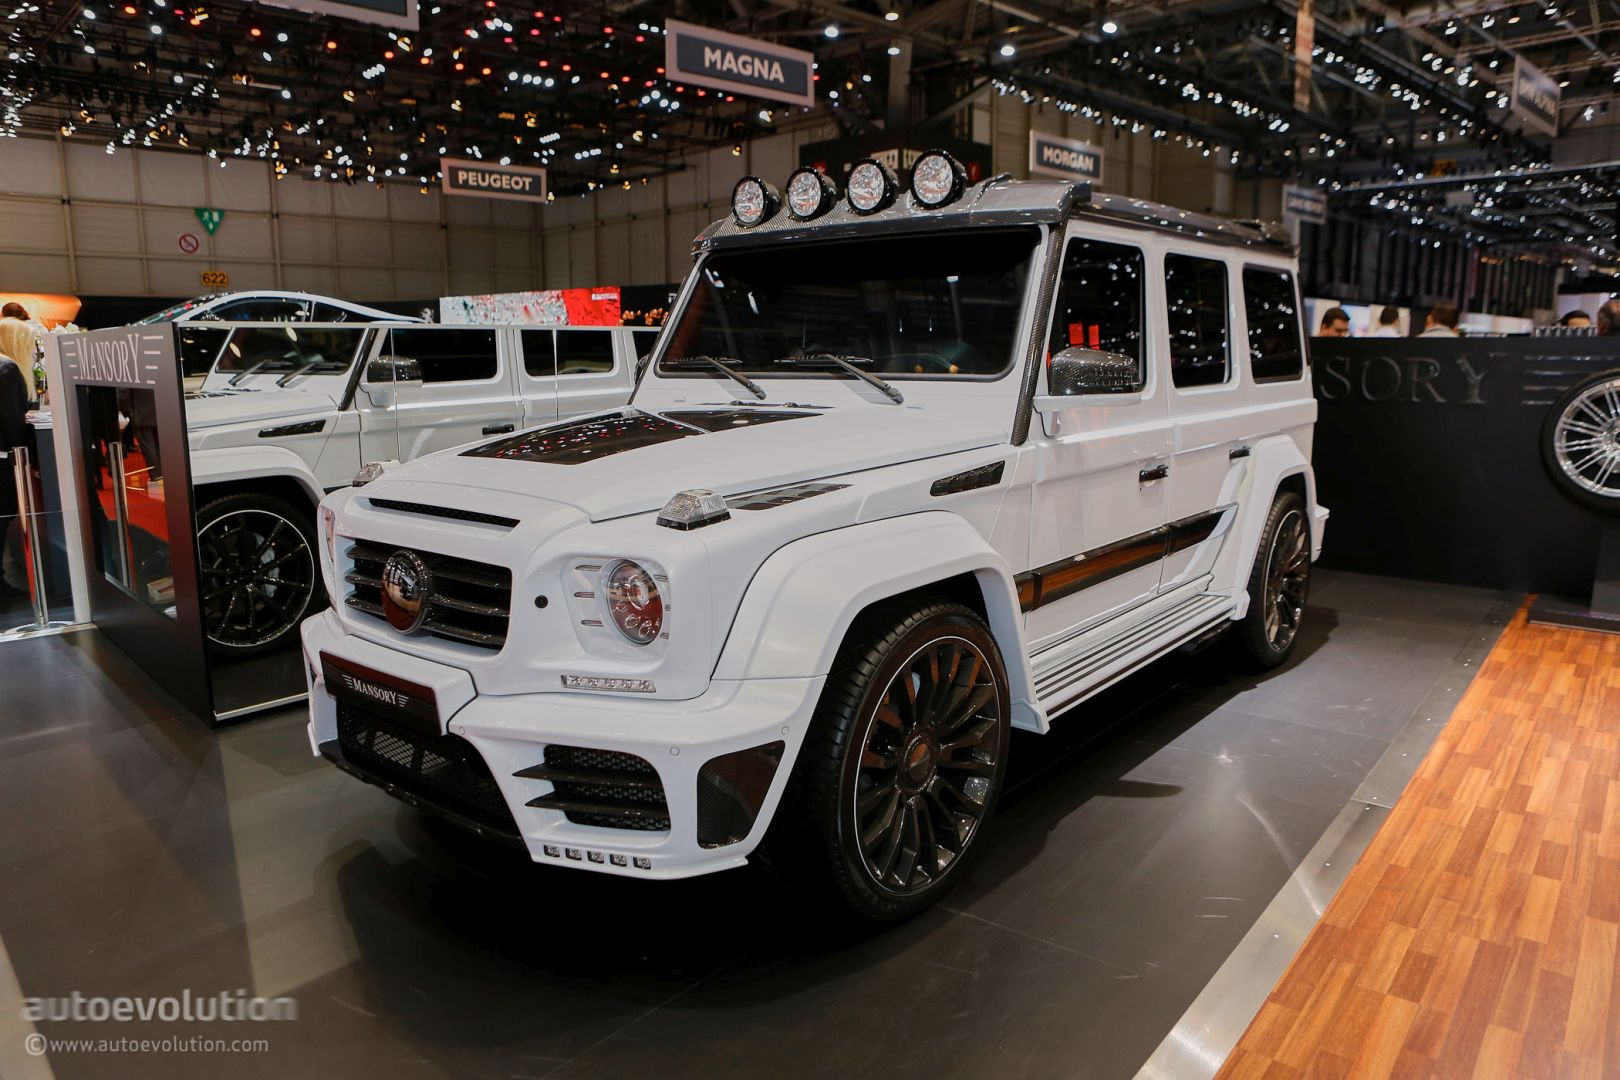 Mansory Showcases Its Tuned Mercedes Cars and SUV in Geneva